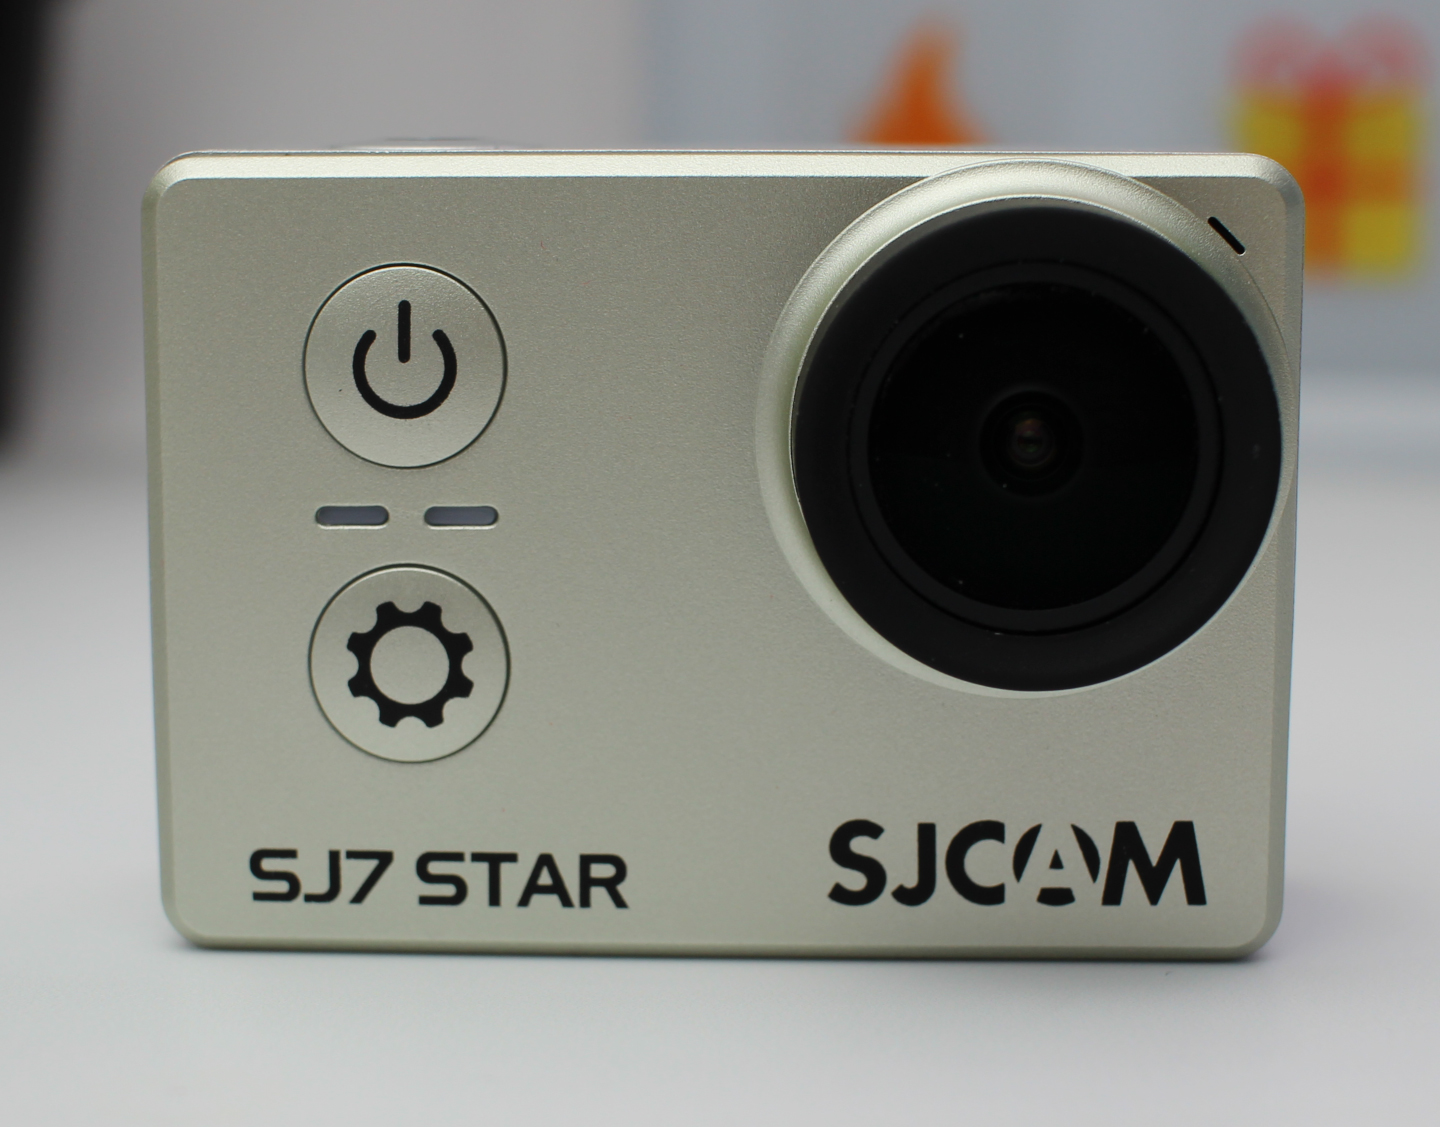 sjcam sj7 star test hochwertige 4k action cam. Black Bedroom Furniture Sets. Home Design Ideas